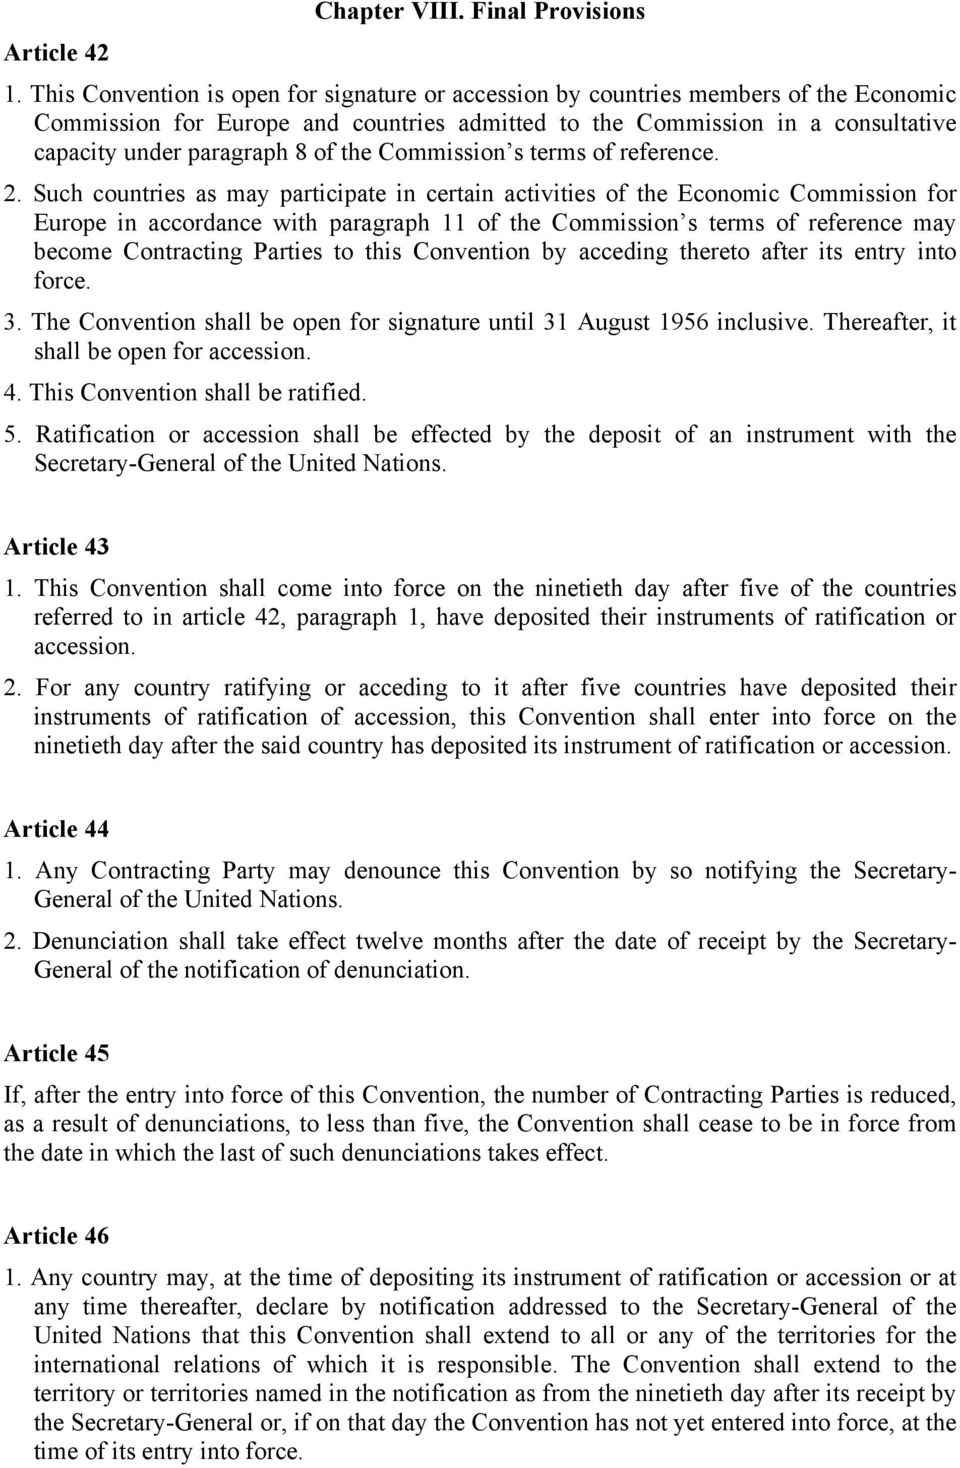 the Commission s terms of reference. 2.